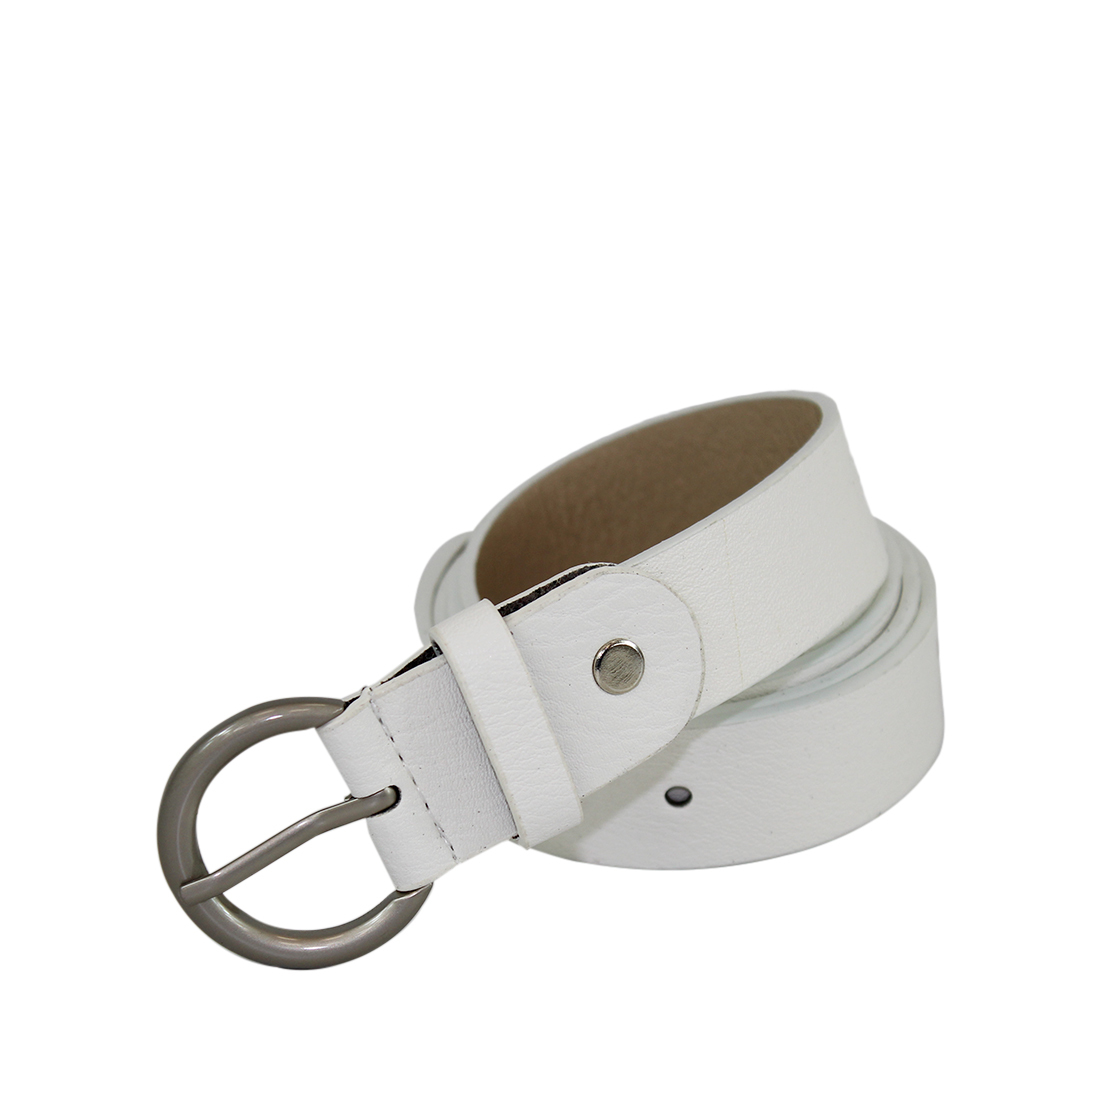 Plain with a round silver buckle